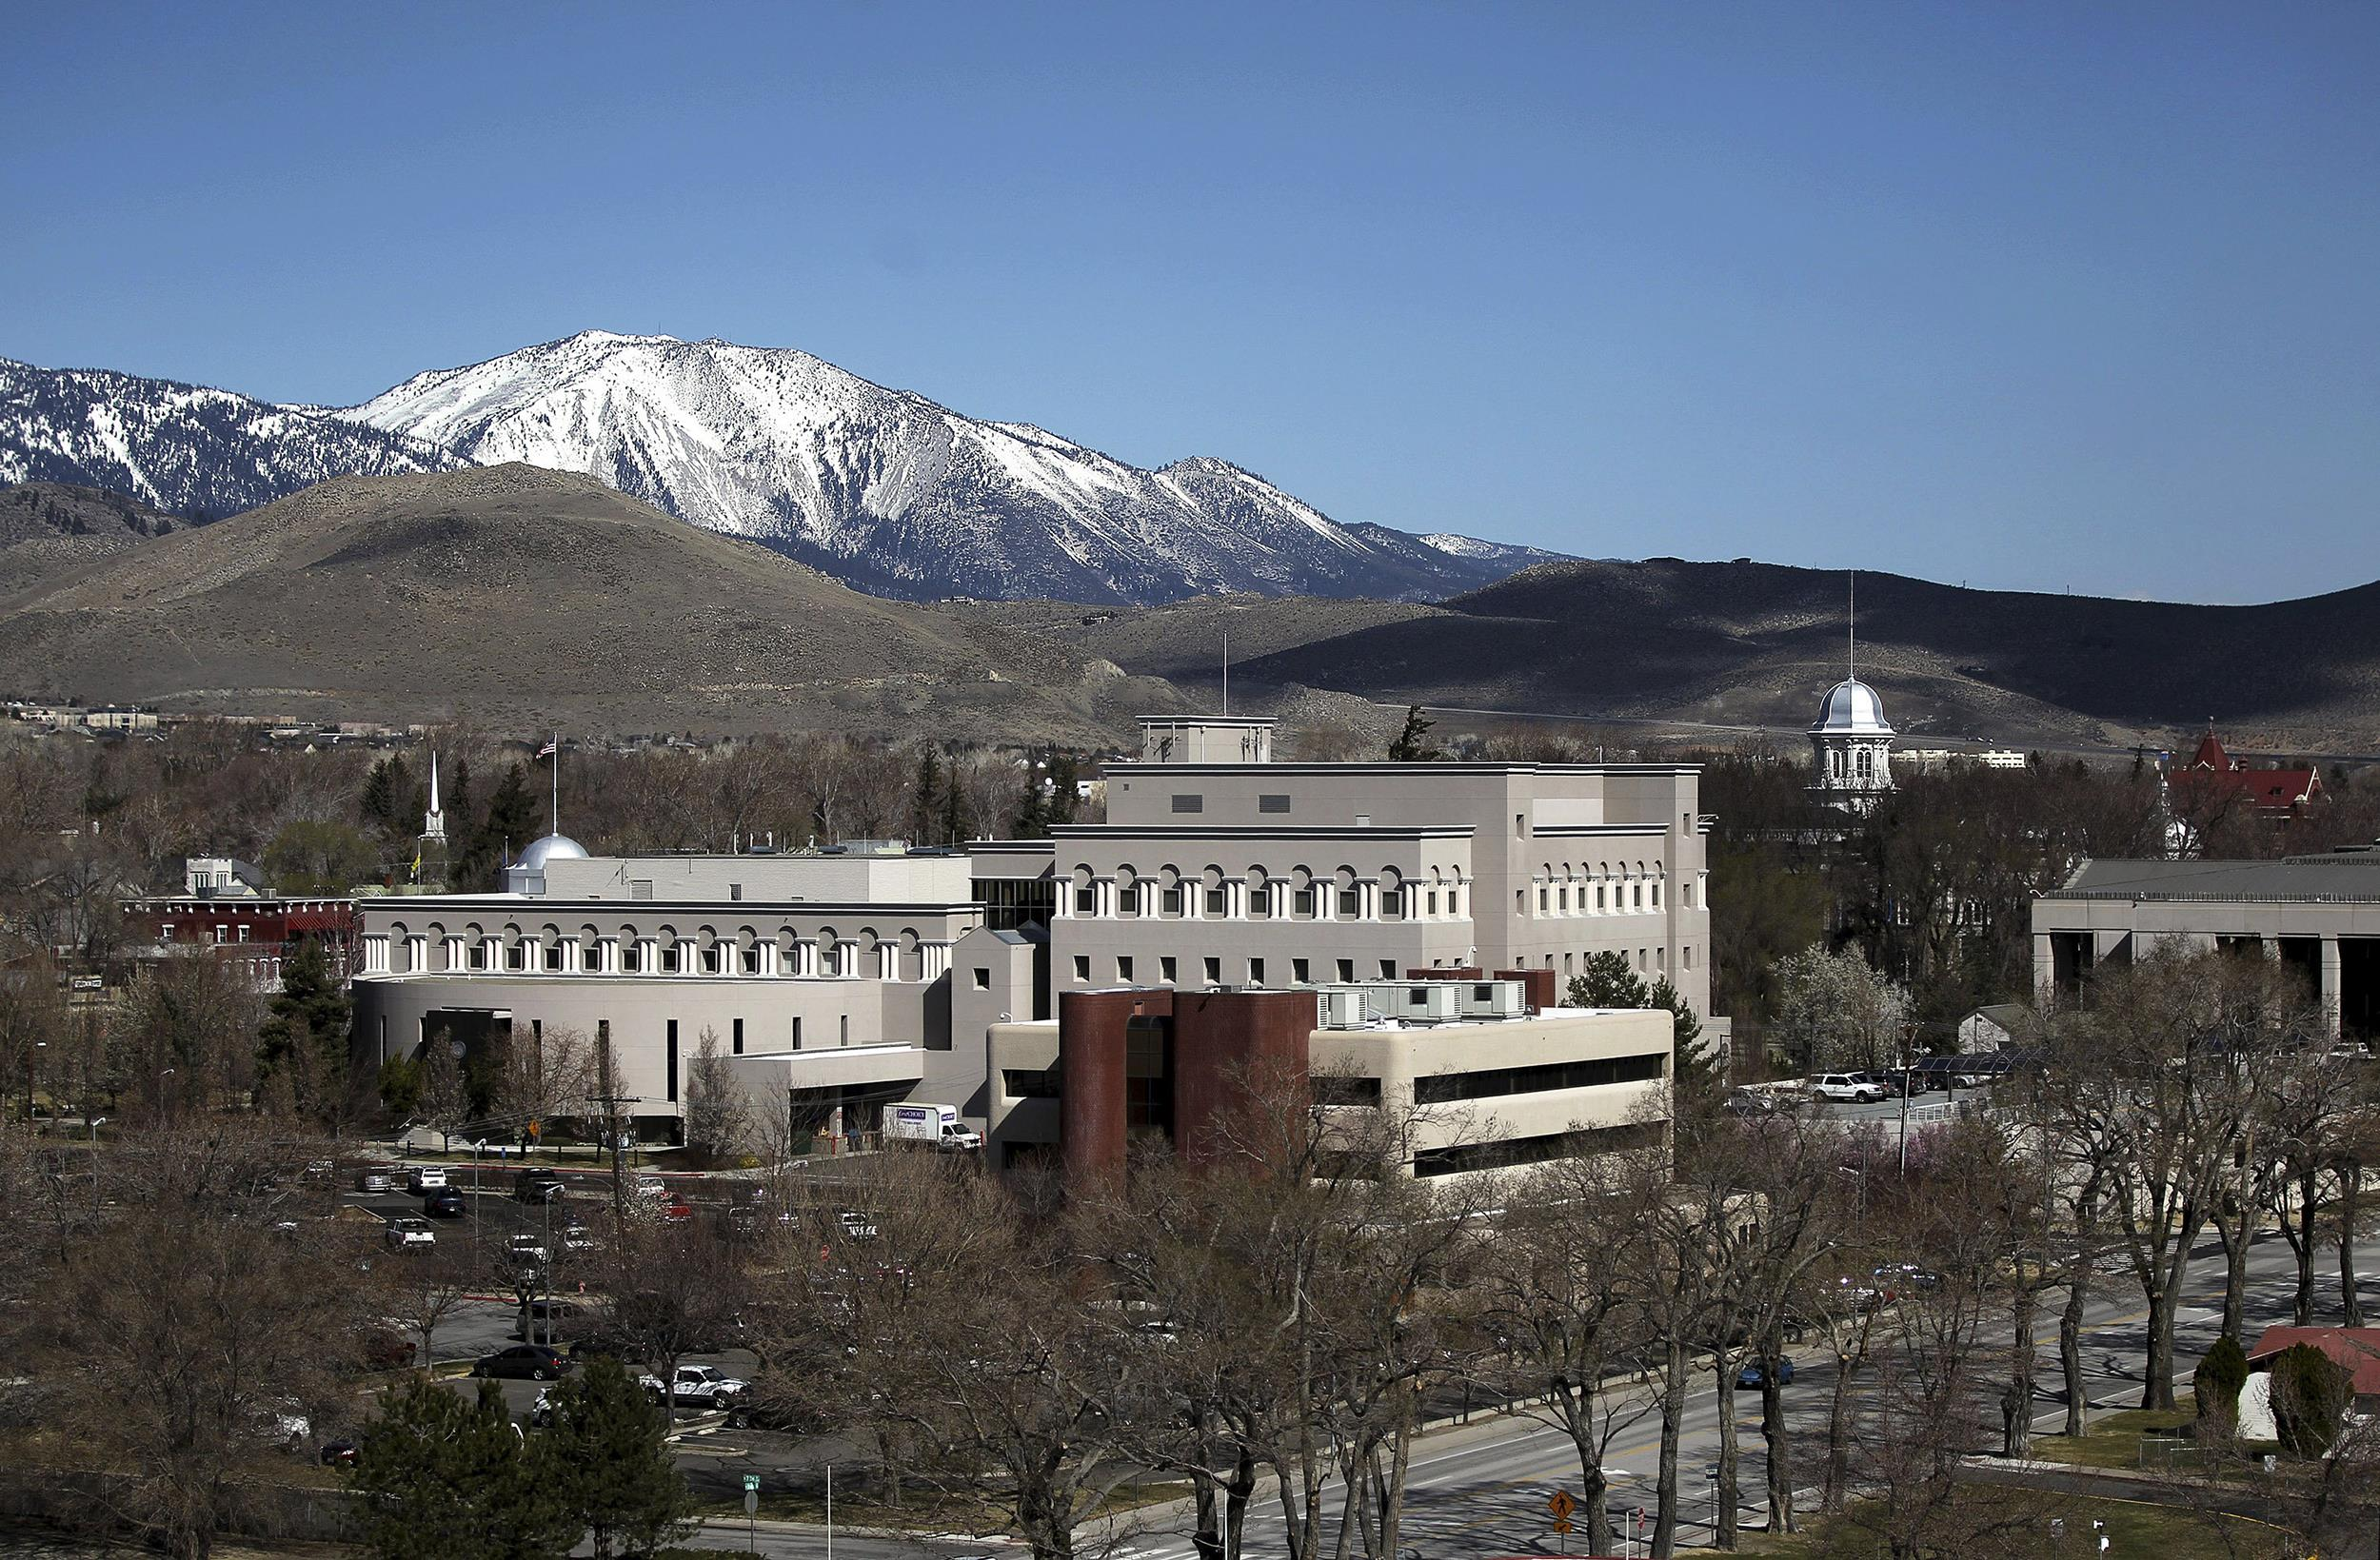 Temperatures Rising Carson City Leads Nation In Warming Trend